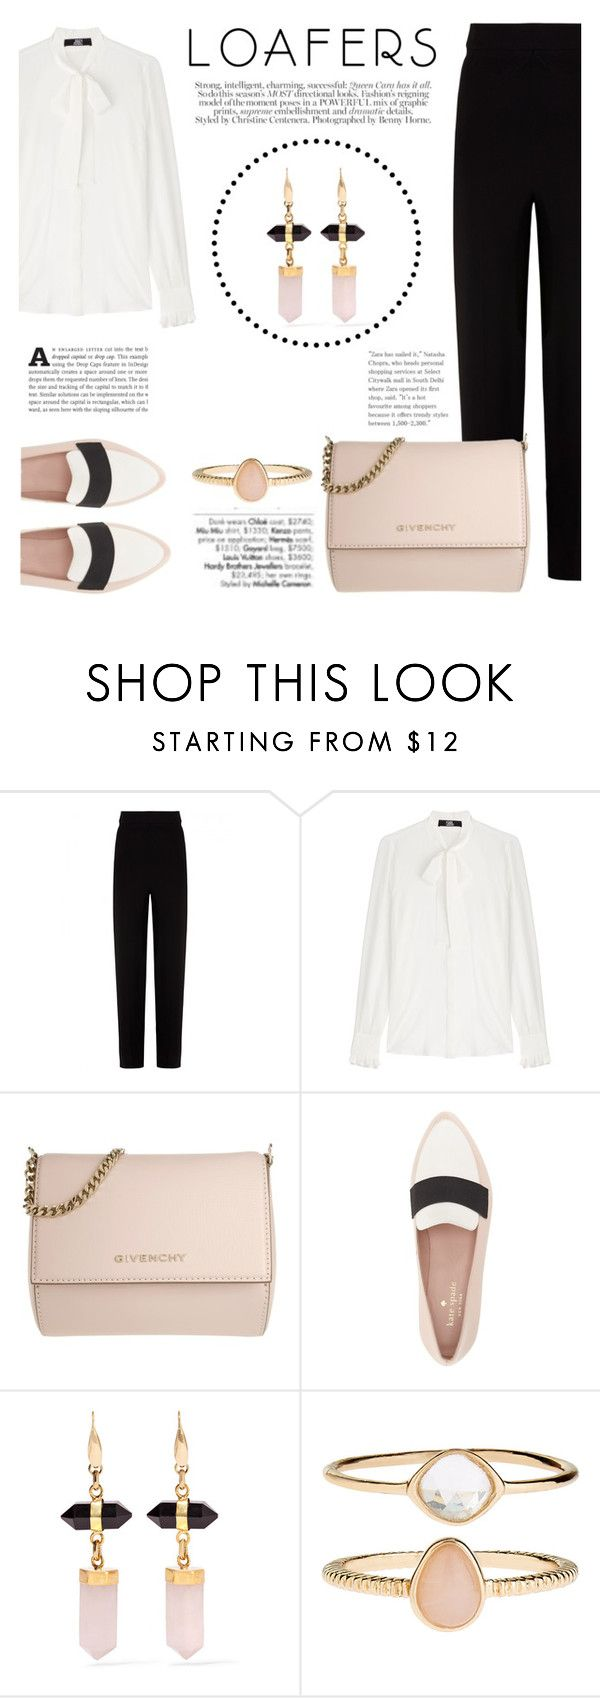 """""""Fall Footwear Trend: Loafers"""" by katsin90 ❤ liked on Polyvore featuring Balenciaga, Karl Lagerfeld, Givenchy, Kate Spade, Avenue, Isabel Marant and Accessorize"""